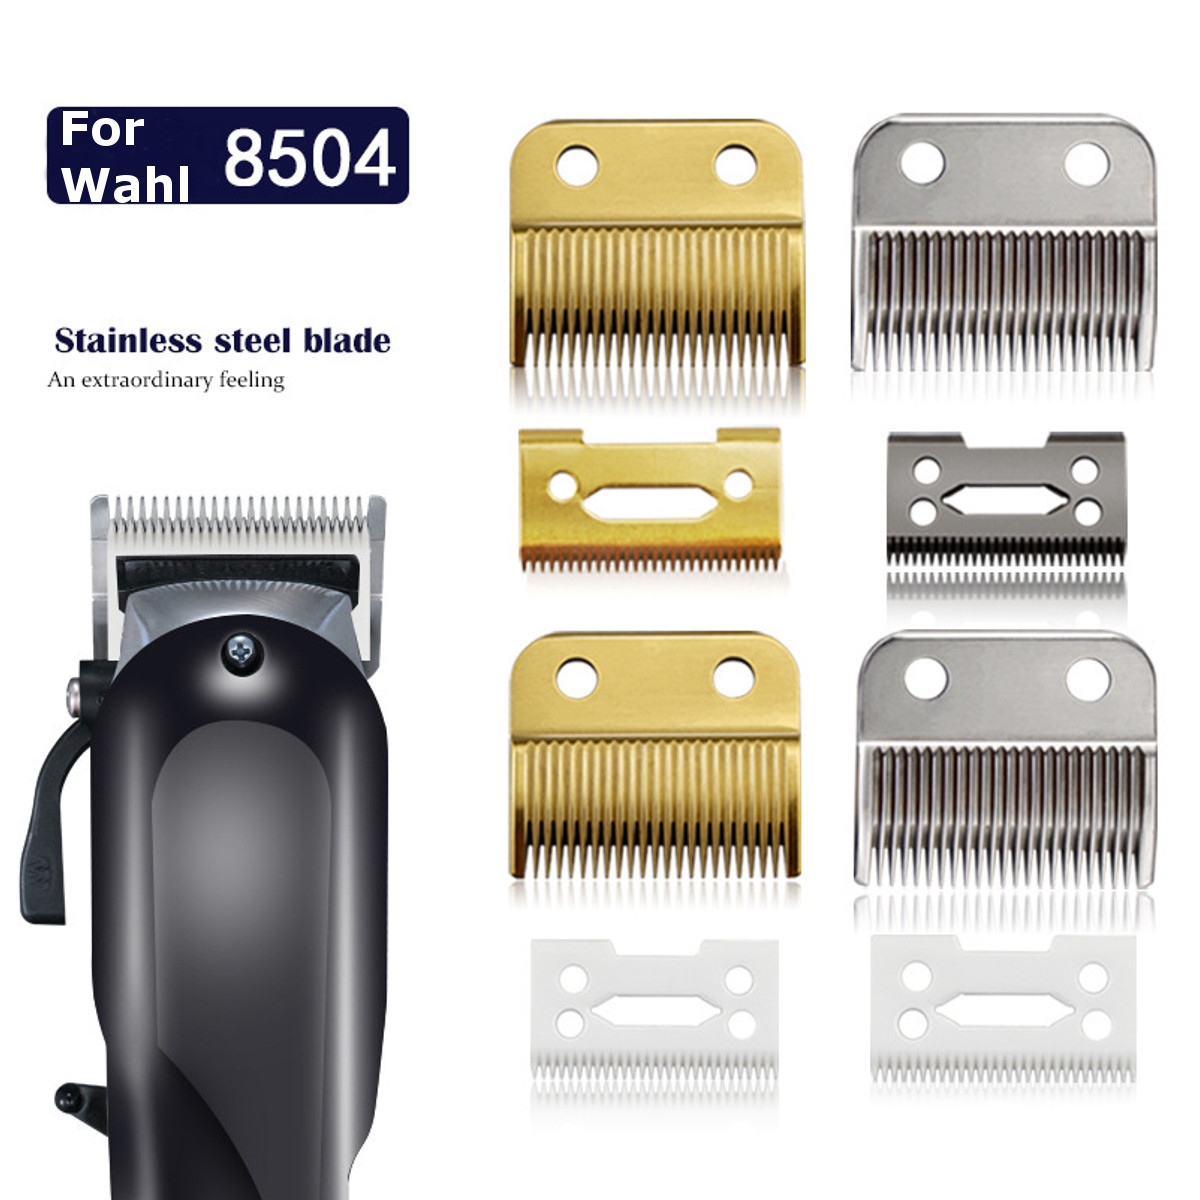 Clipper Part Standard Trimmer Accessories Movable Blade Professional Hair Barber Hair Replacement Blade Set For Wahl 8504